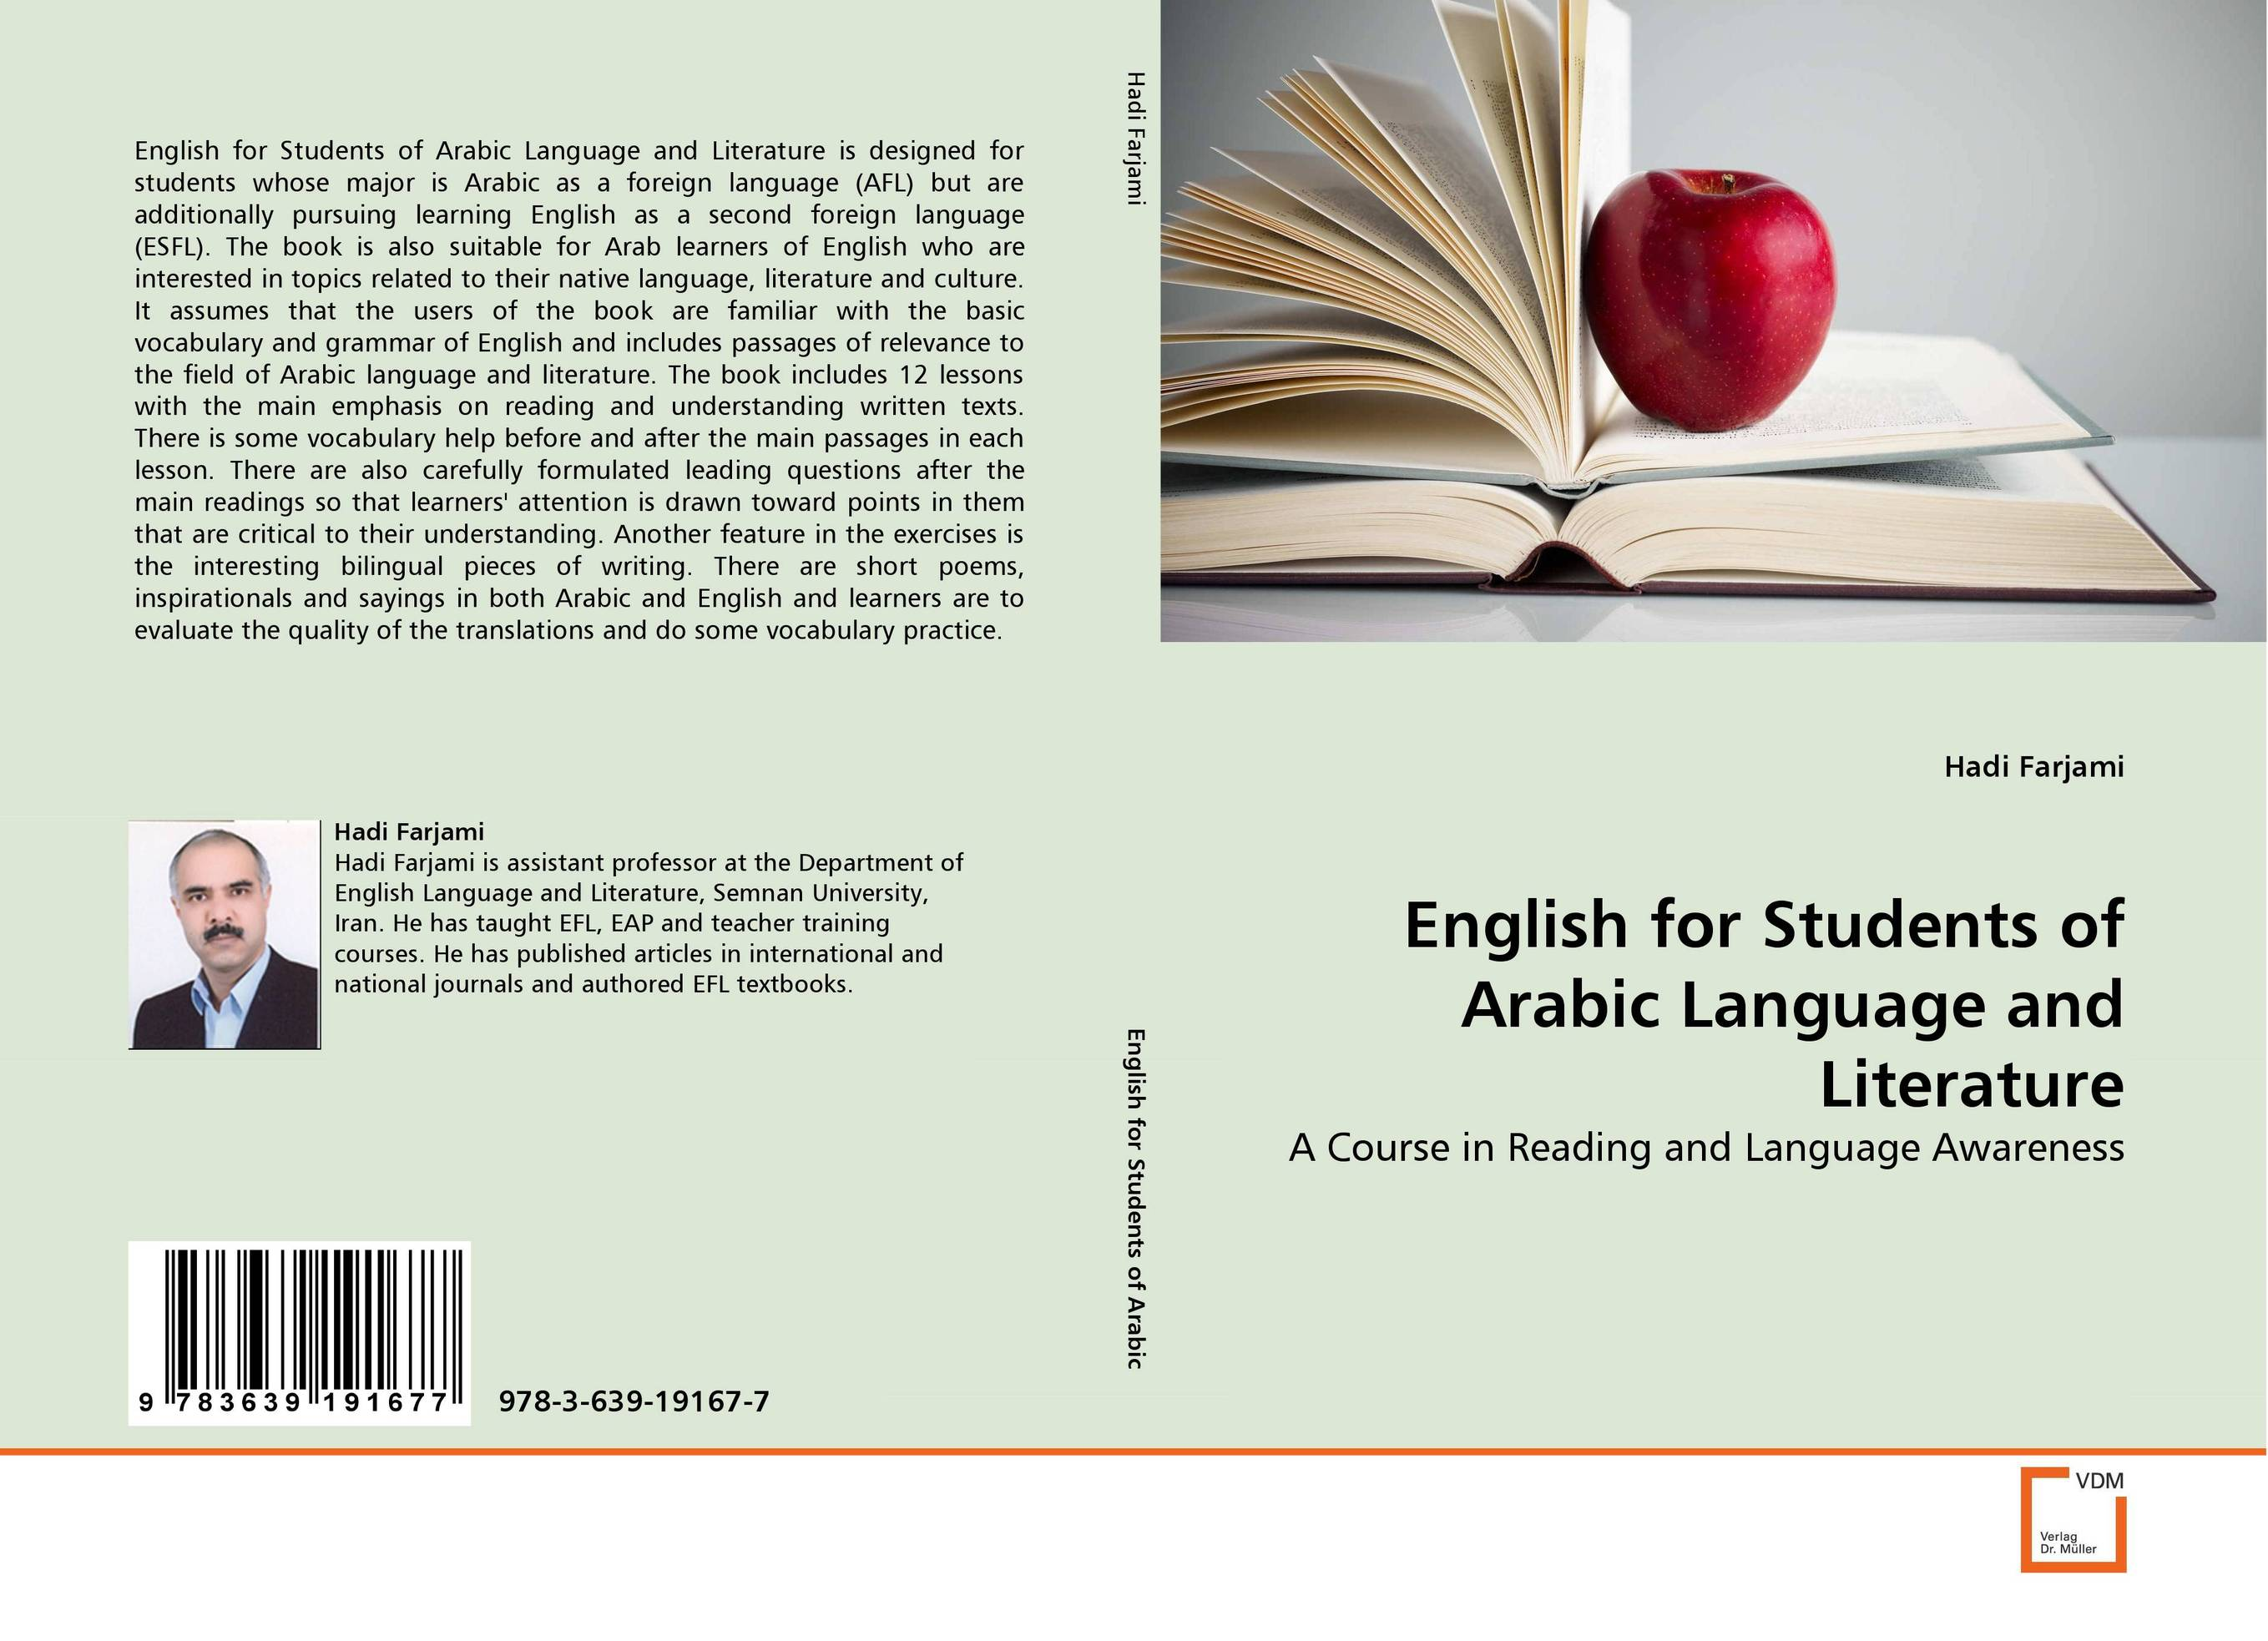 English for Students of Arabic Language and Literature james wasajja the english language communicative needs among international students